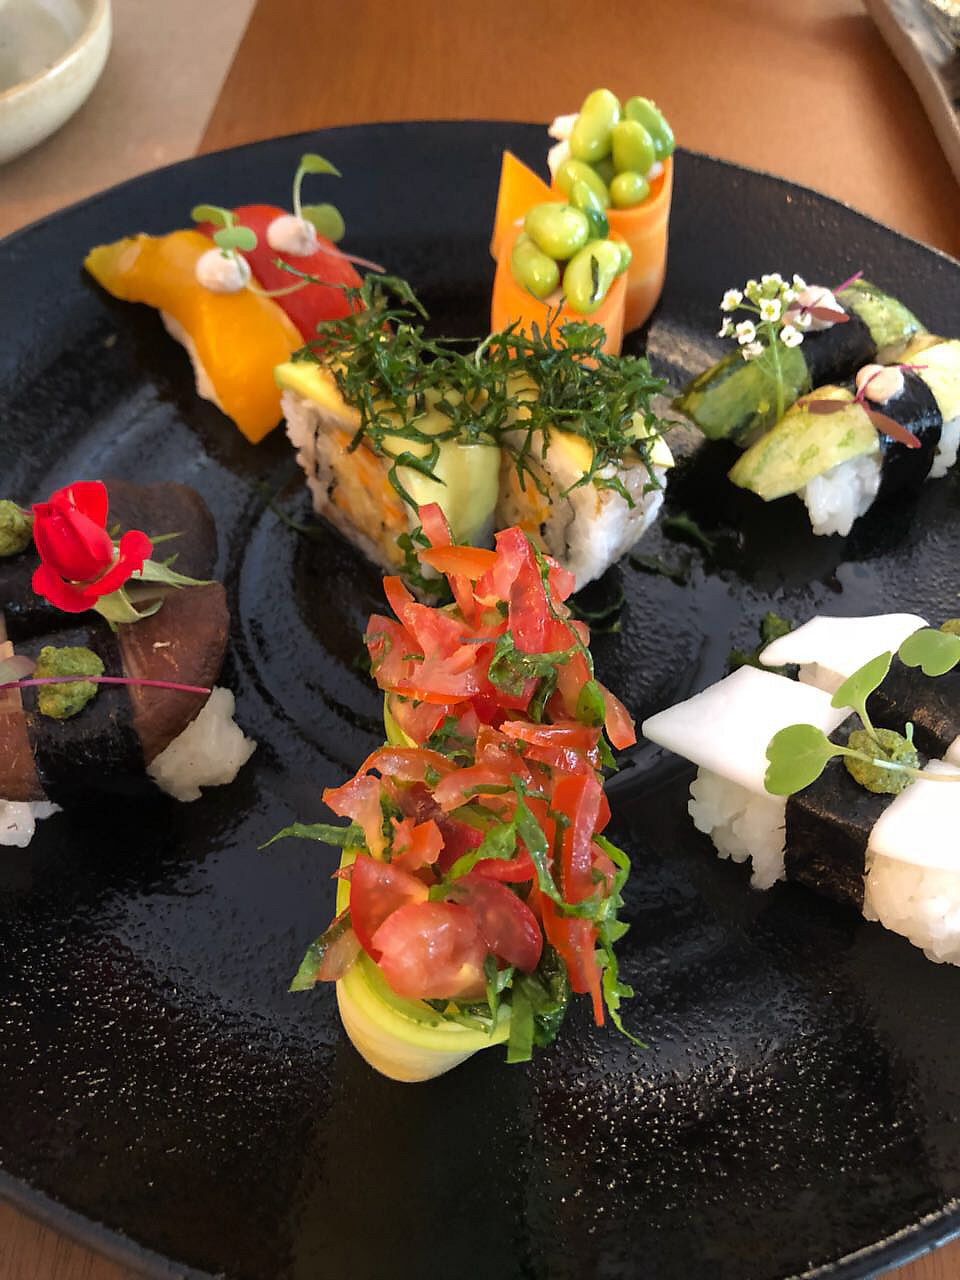 """Photo of Sushimar Vegano  by <a href=""""/members/profile/RhaissaSoares"""">RhaissaSoares</a> <br/>Sushi plate <br/> February 10, 2018  - <a href='/contact/abuse/image/106773/357380'>Report</a>"""